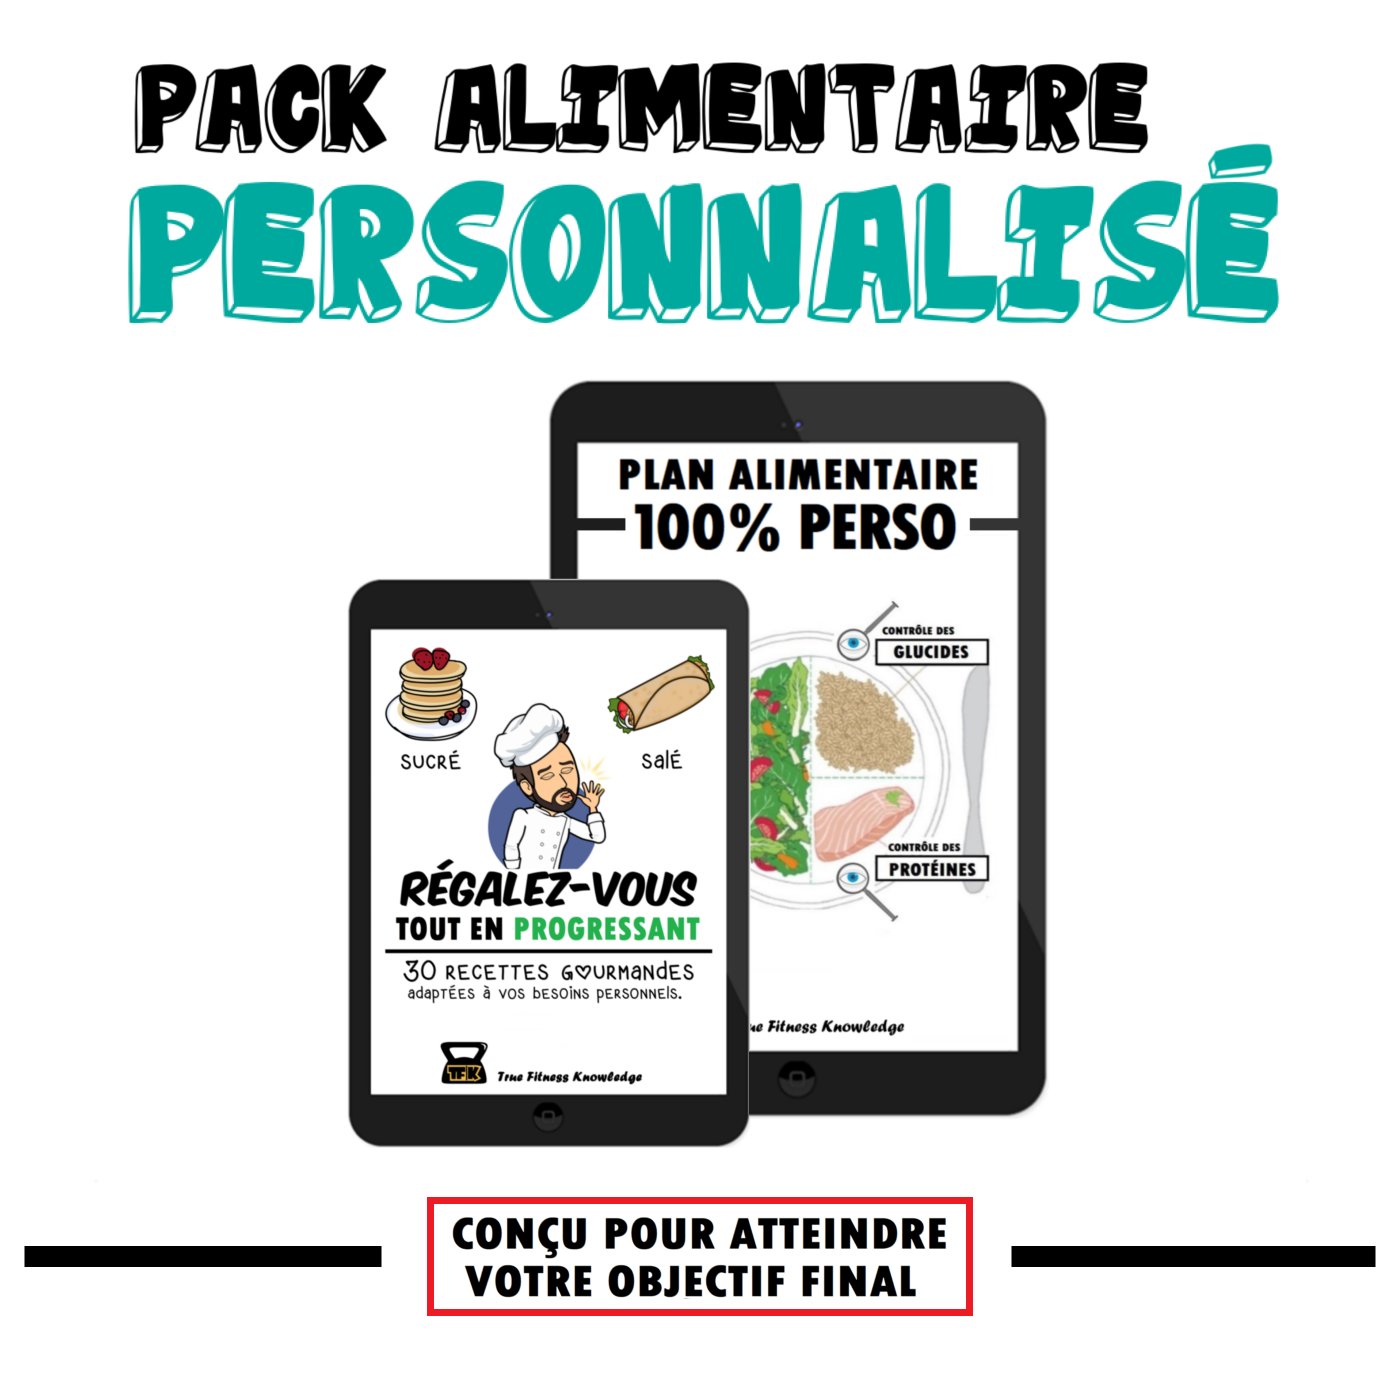 pack alimentaire perso